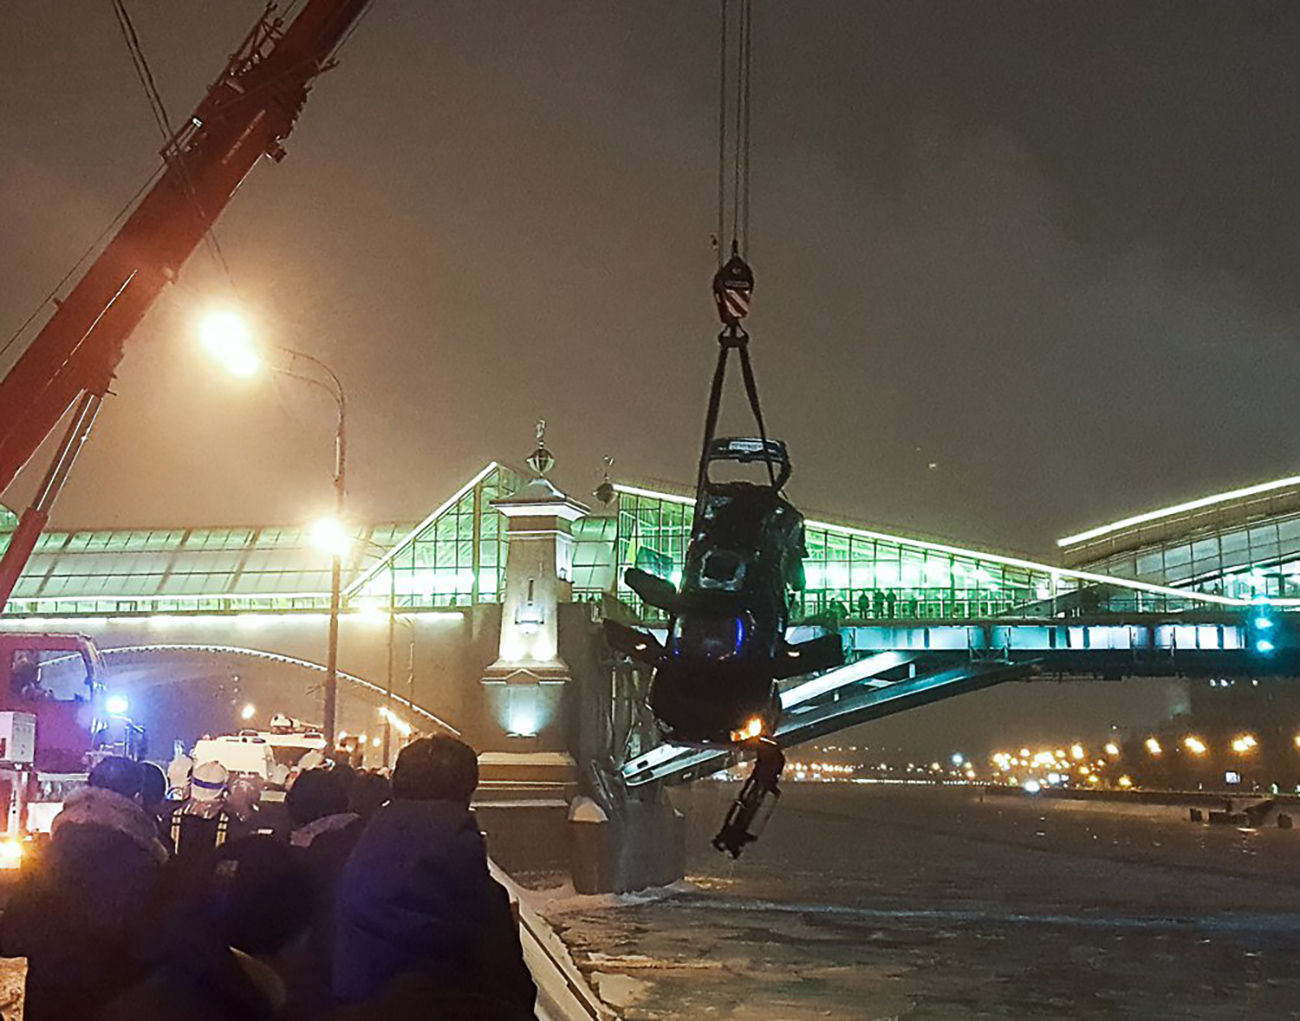 As a result of a car crash in central Moscow, a Subaru Forester smashed through the metal road railing and plunged into the Moscow River.